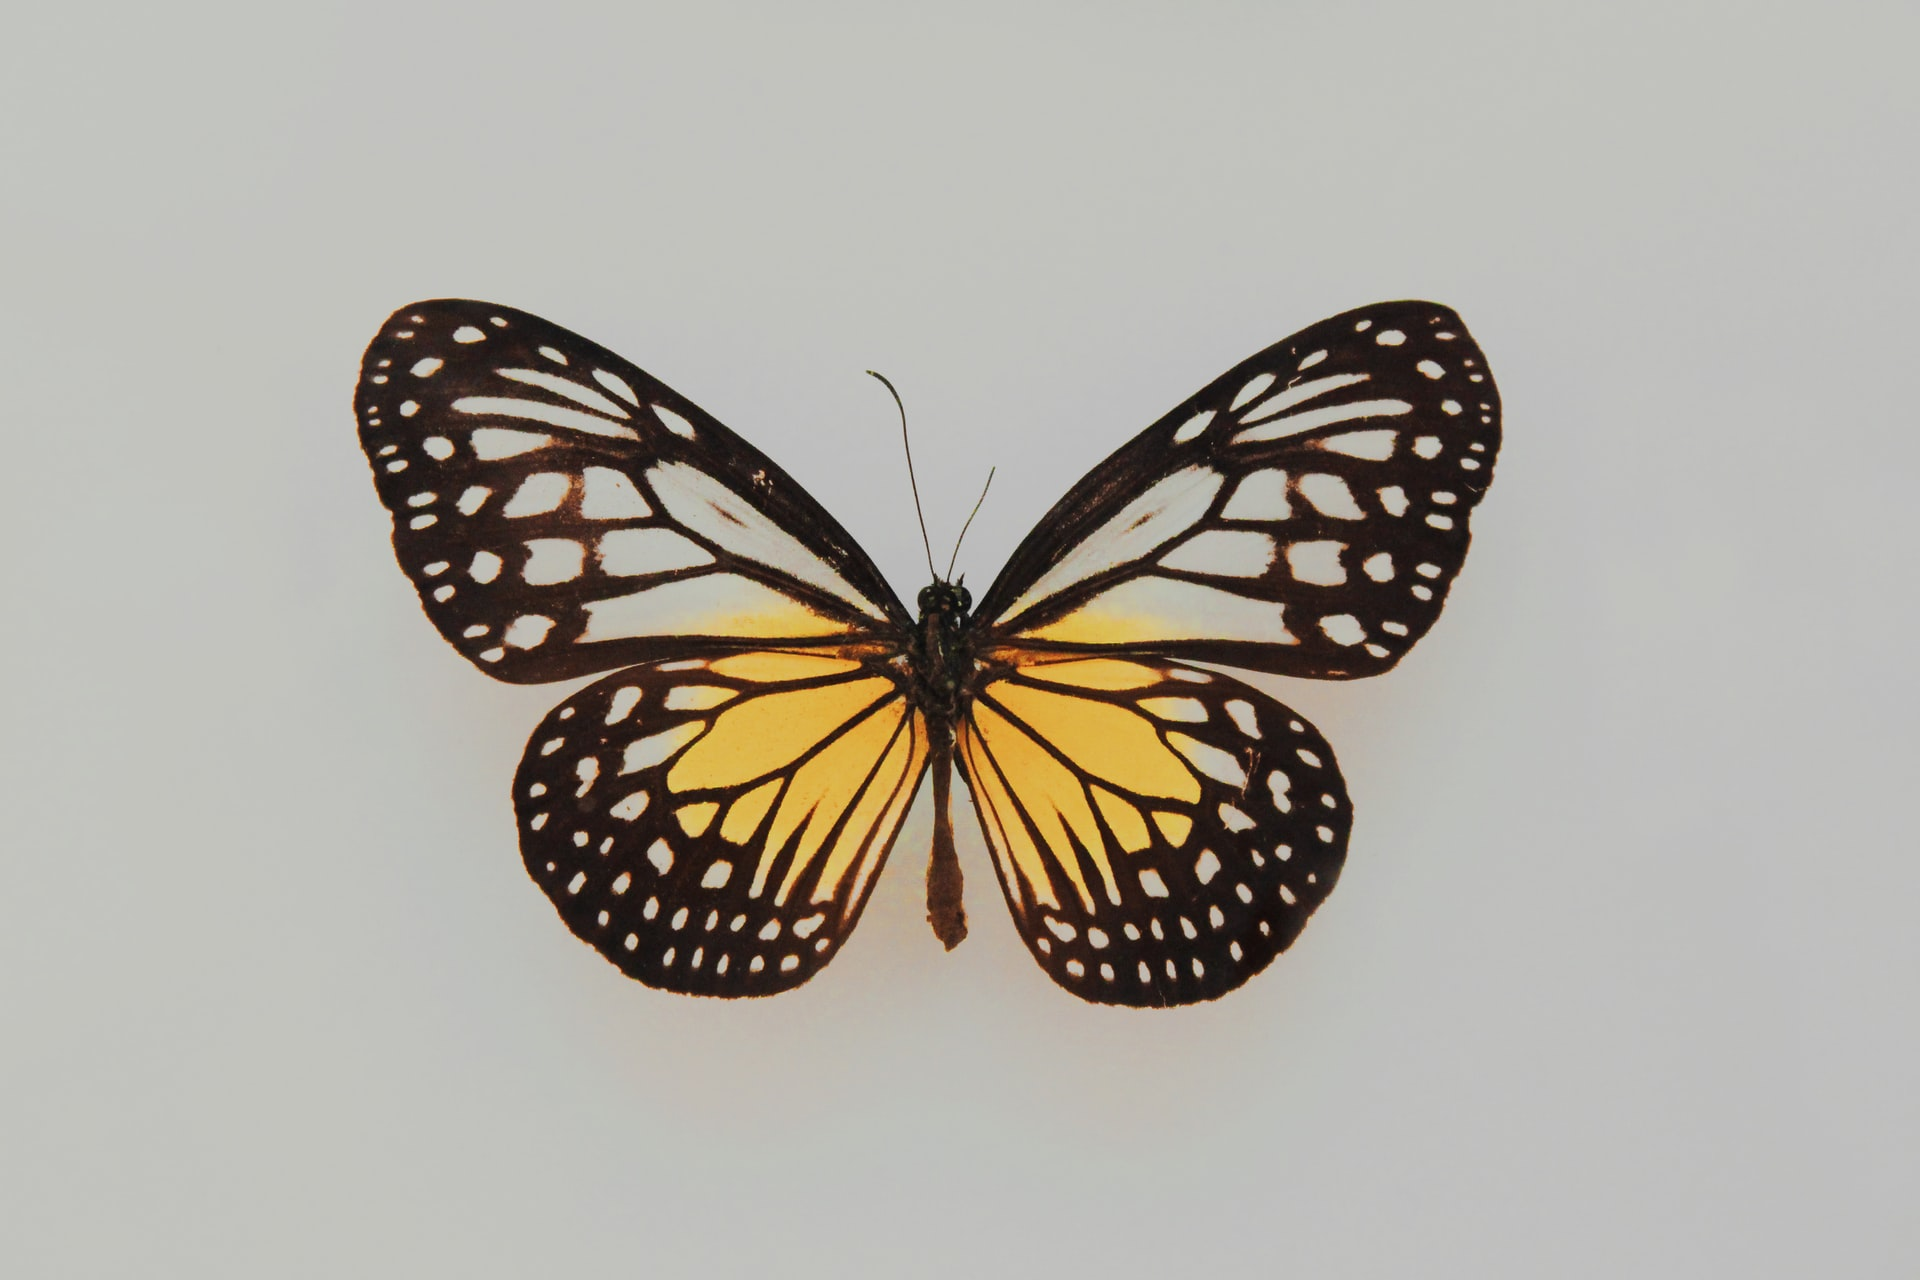 Butterfly with yellow on its wings. Photo courtesy of Fleur on Unsplash.